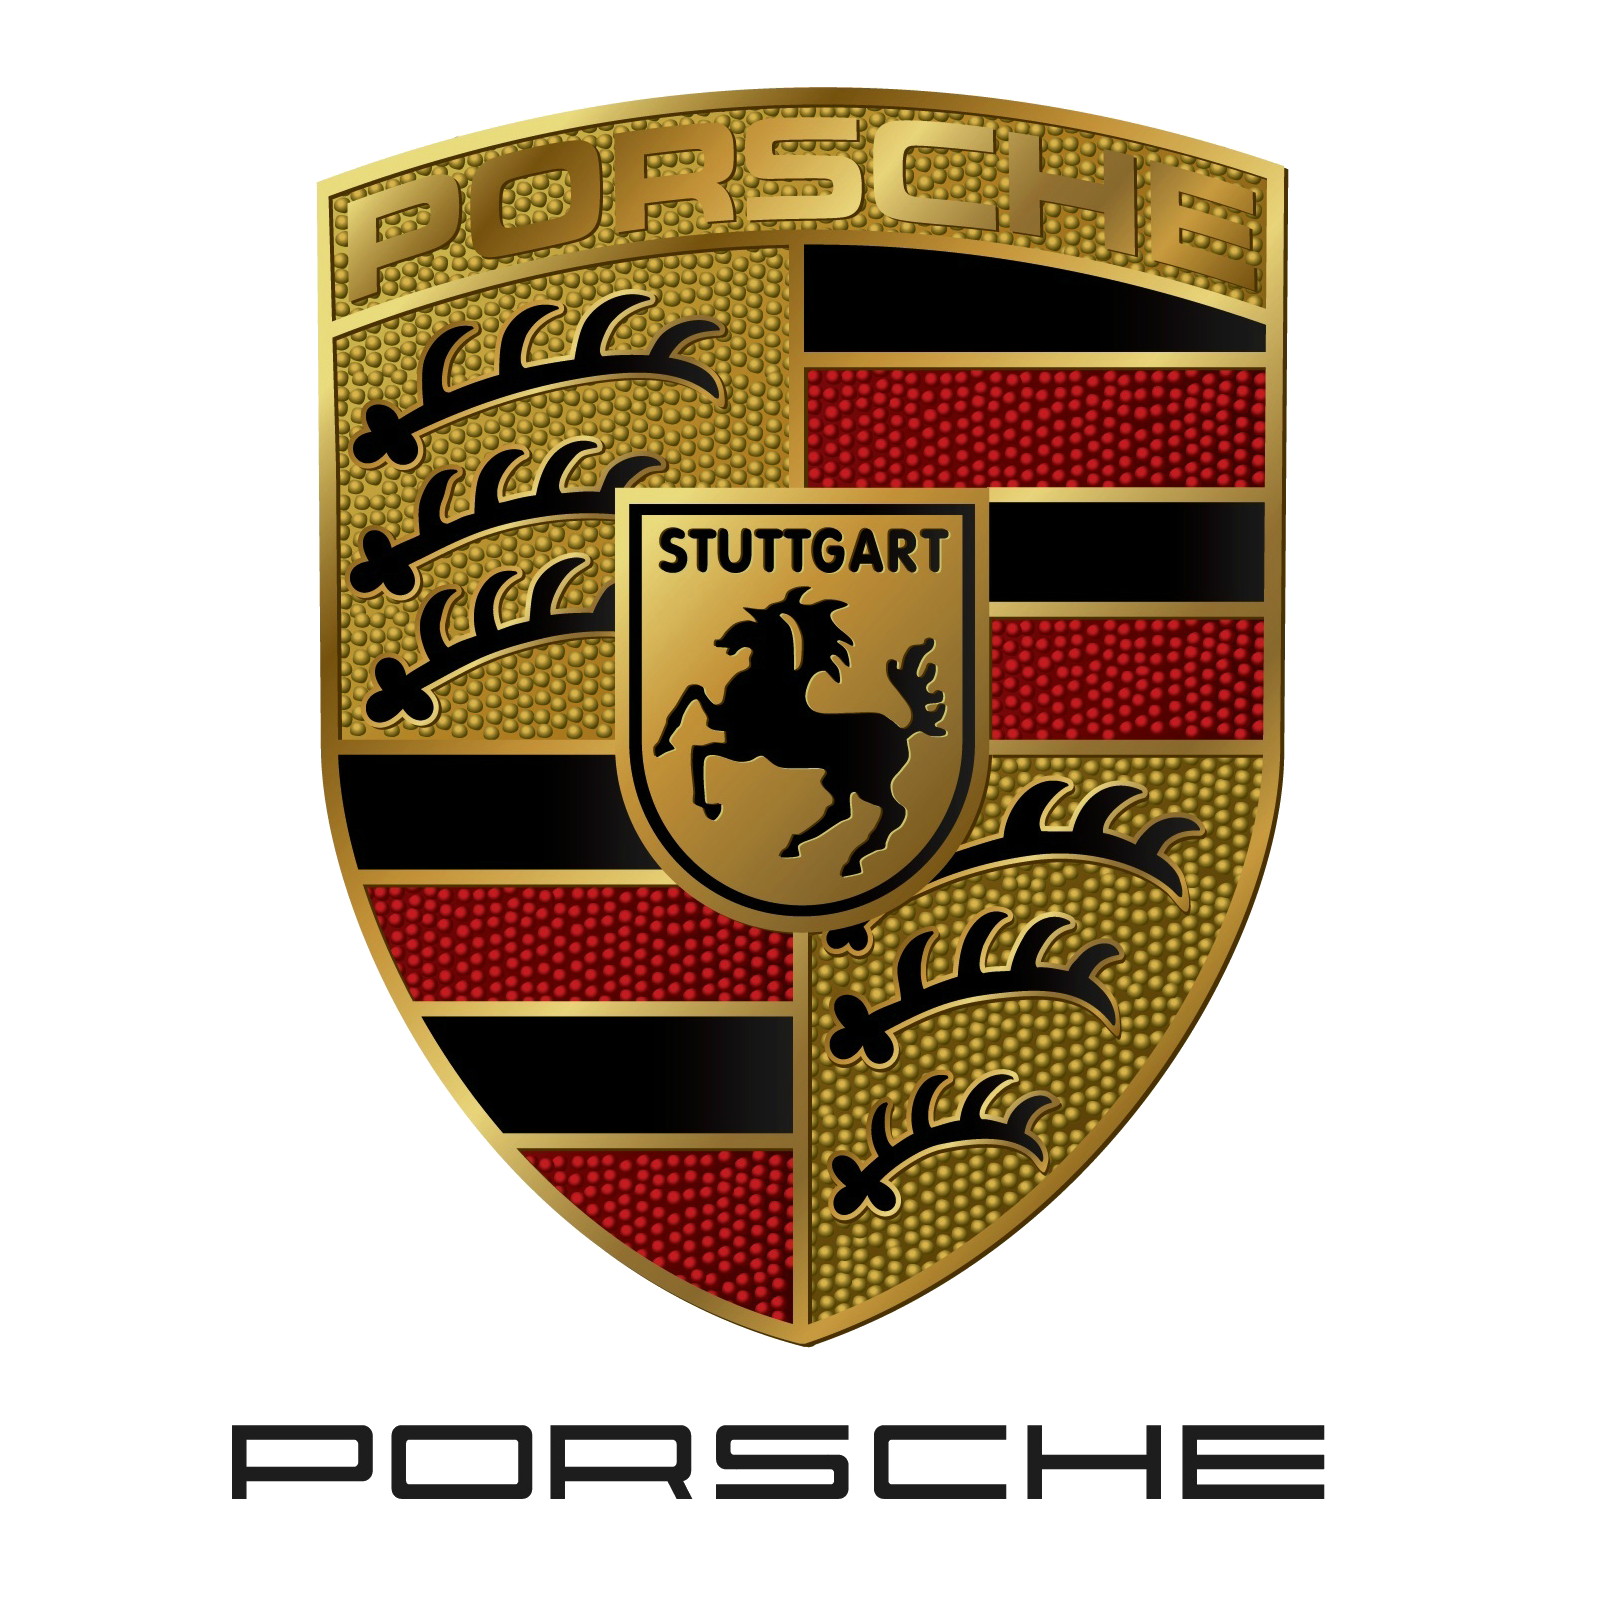 Porsche Logo, Porsche Car Symbol Meaning and History